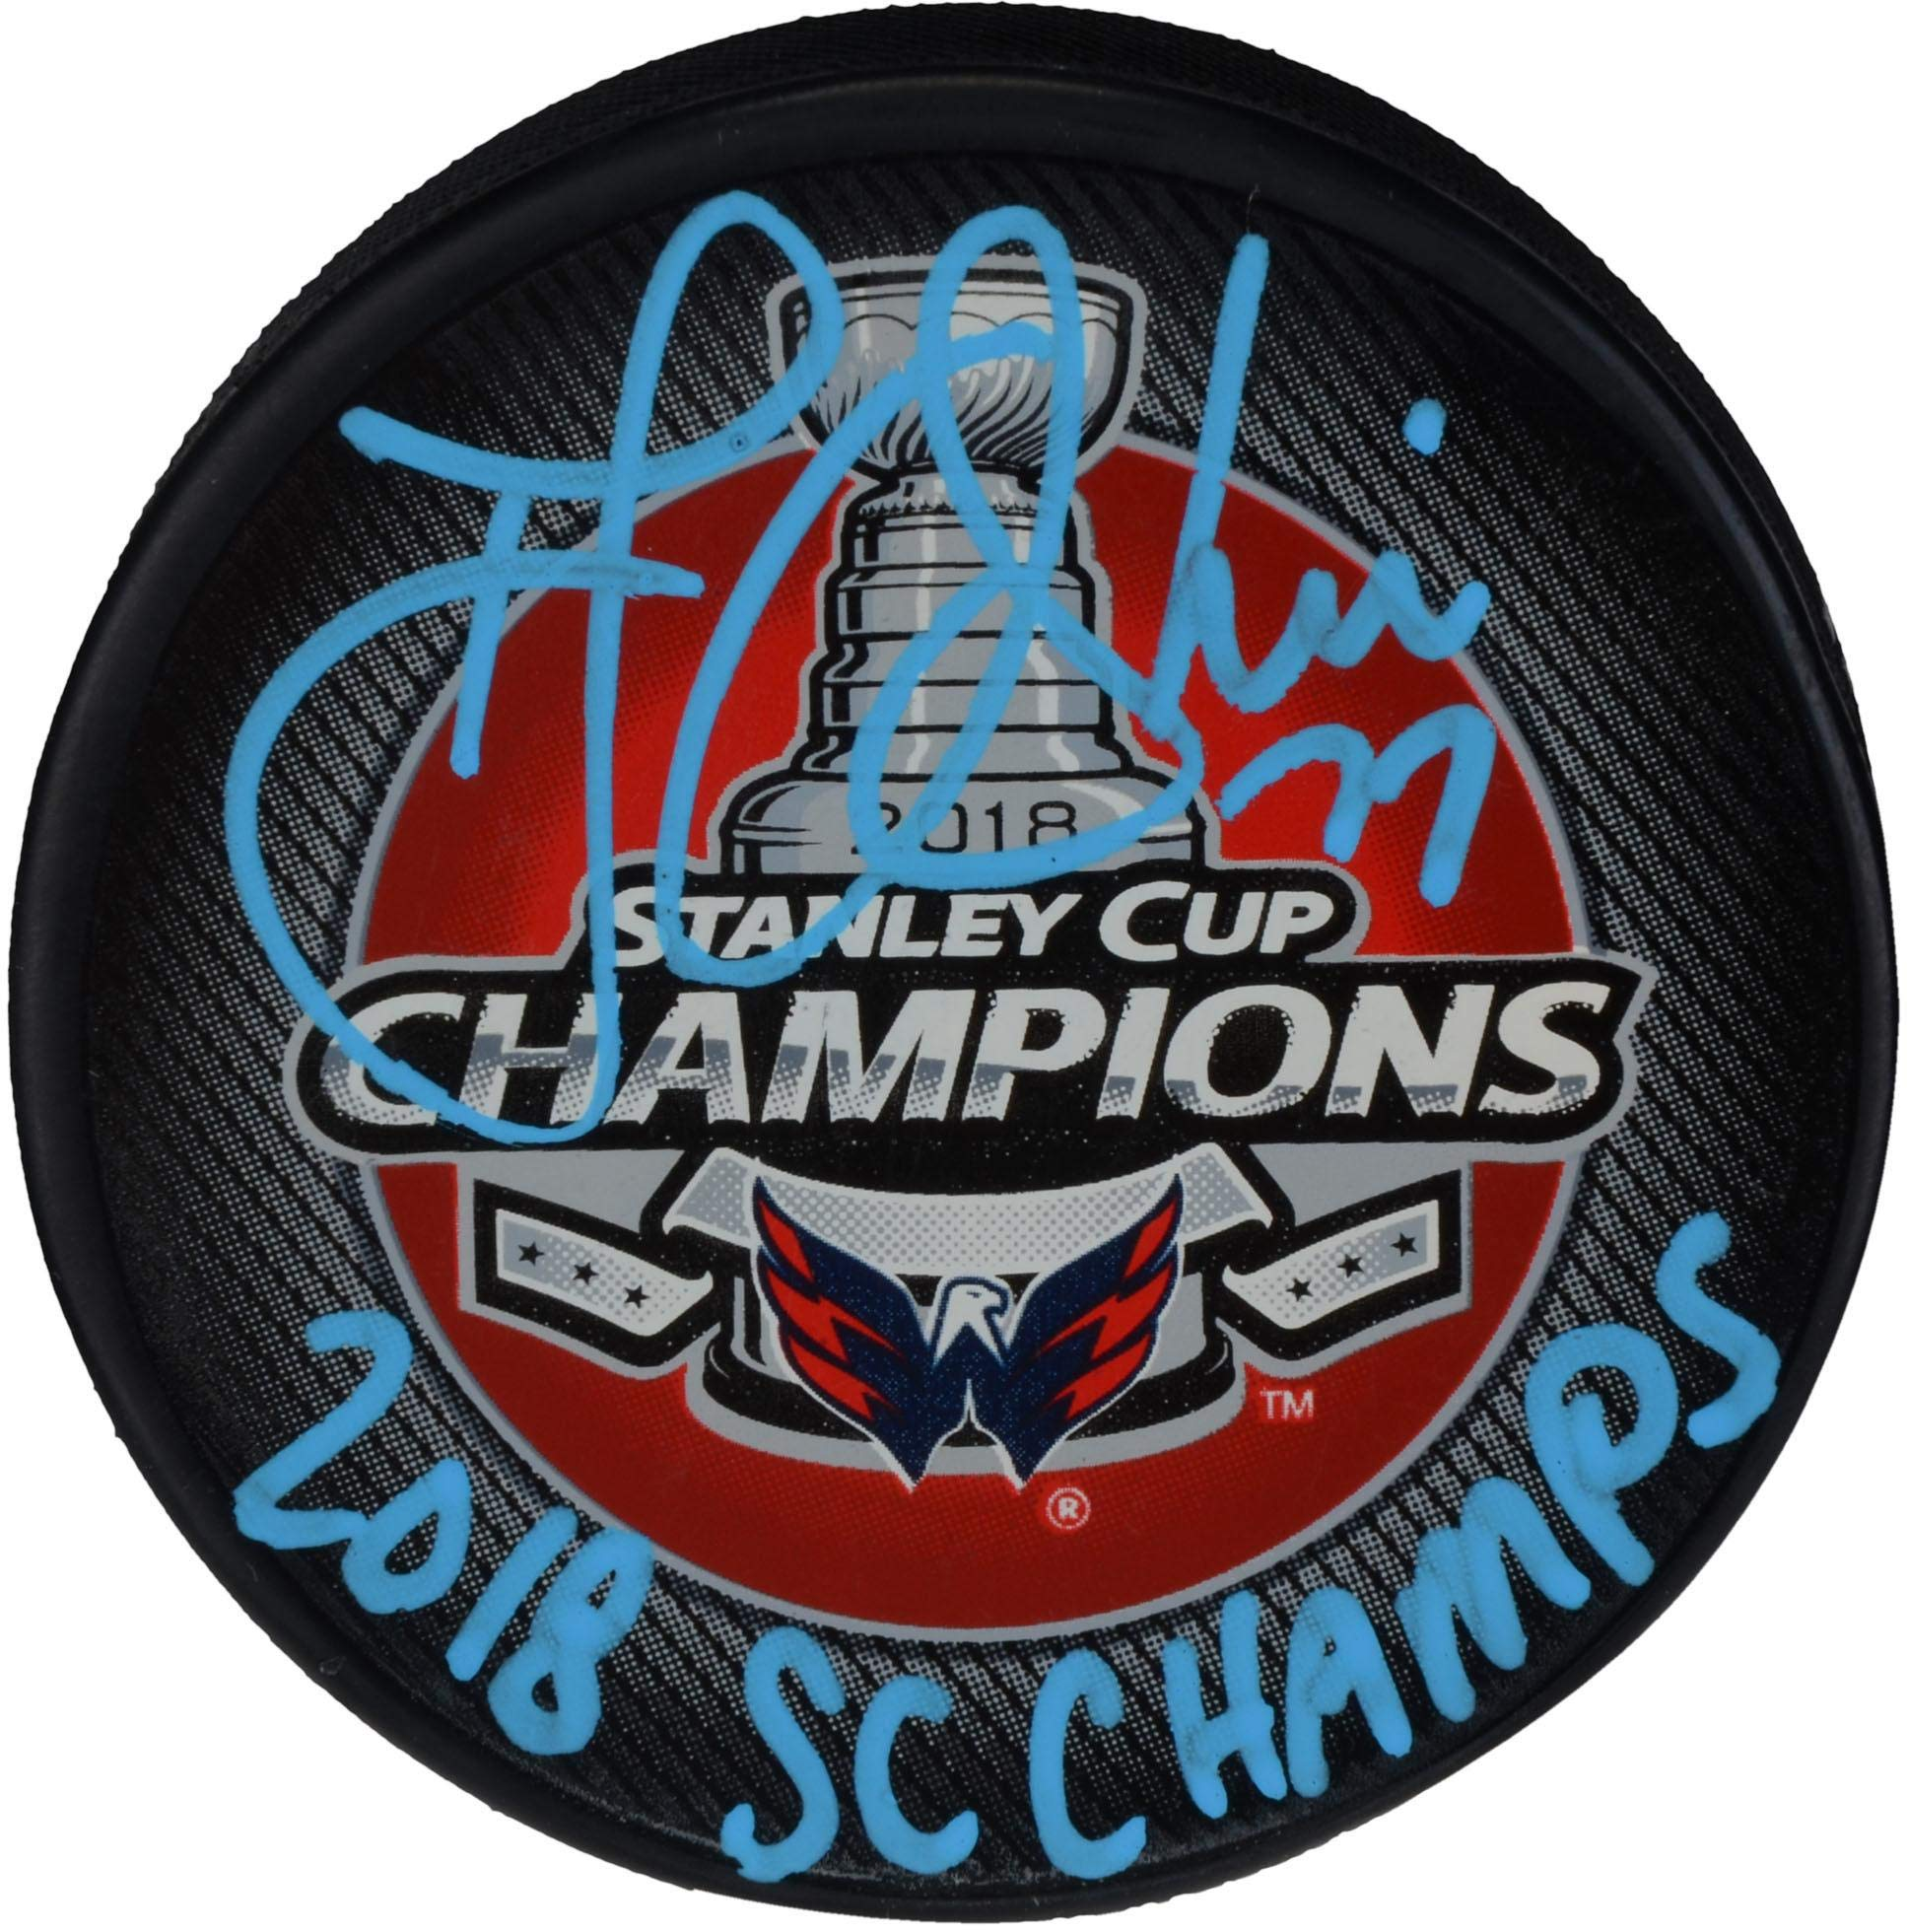 T.J. Oshie Washington Capitals 2018 Stanley Cup Champions Autographed Stanley Cup Champions Logo Hockey Puck with 2018 SC Champs Inscription Fanatics Authentic Certified